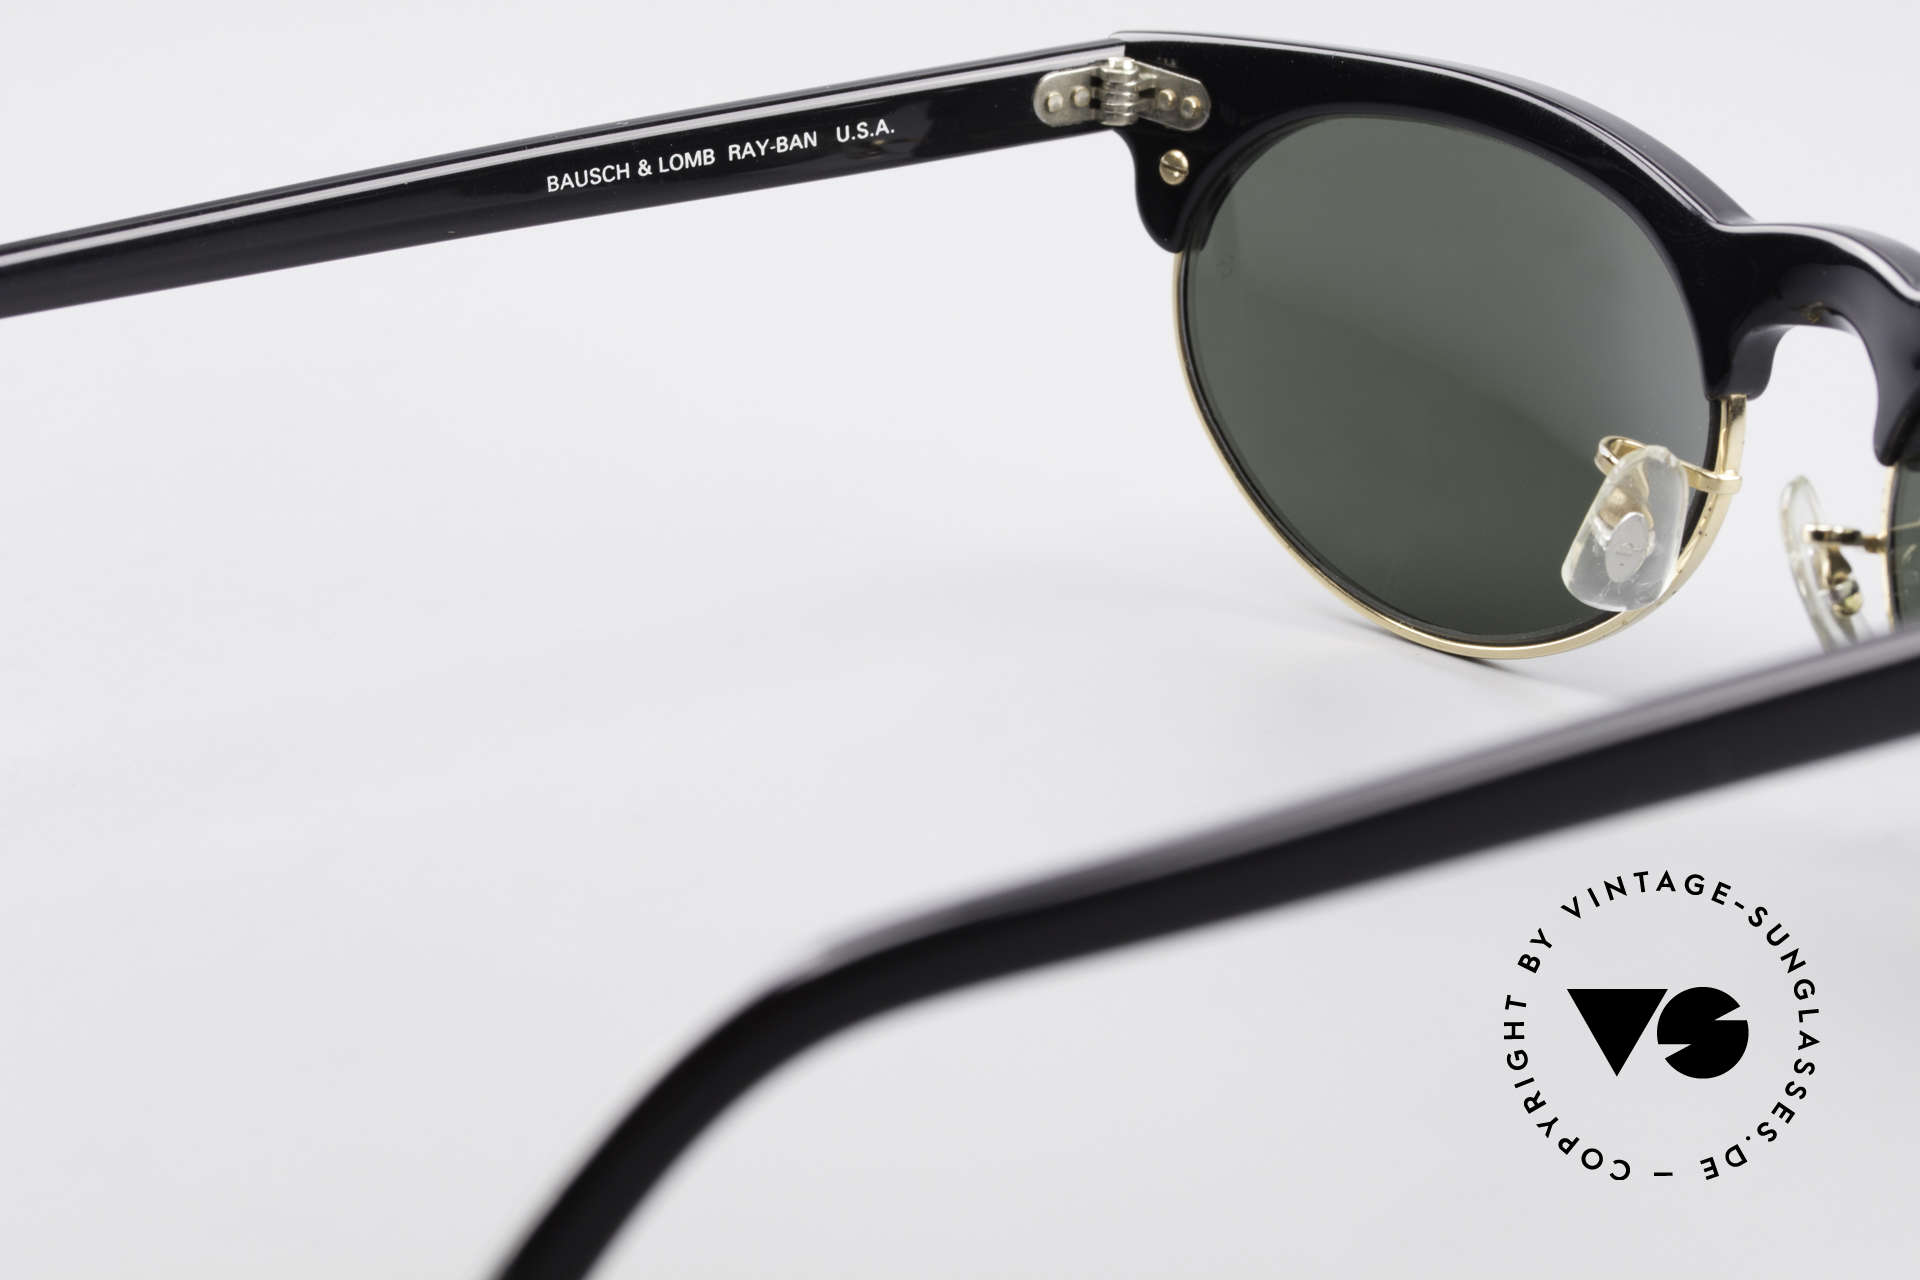 Ray Ban Oval Max 80's Bausch & Lomb Shades B&L, orig. name: Ray-Ban Oval Max, W1266, G15, 54mm, Made for Men and Women